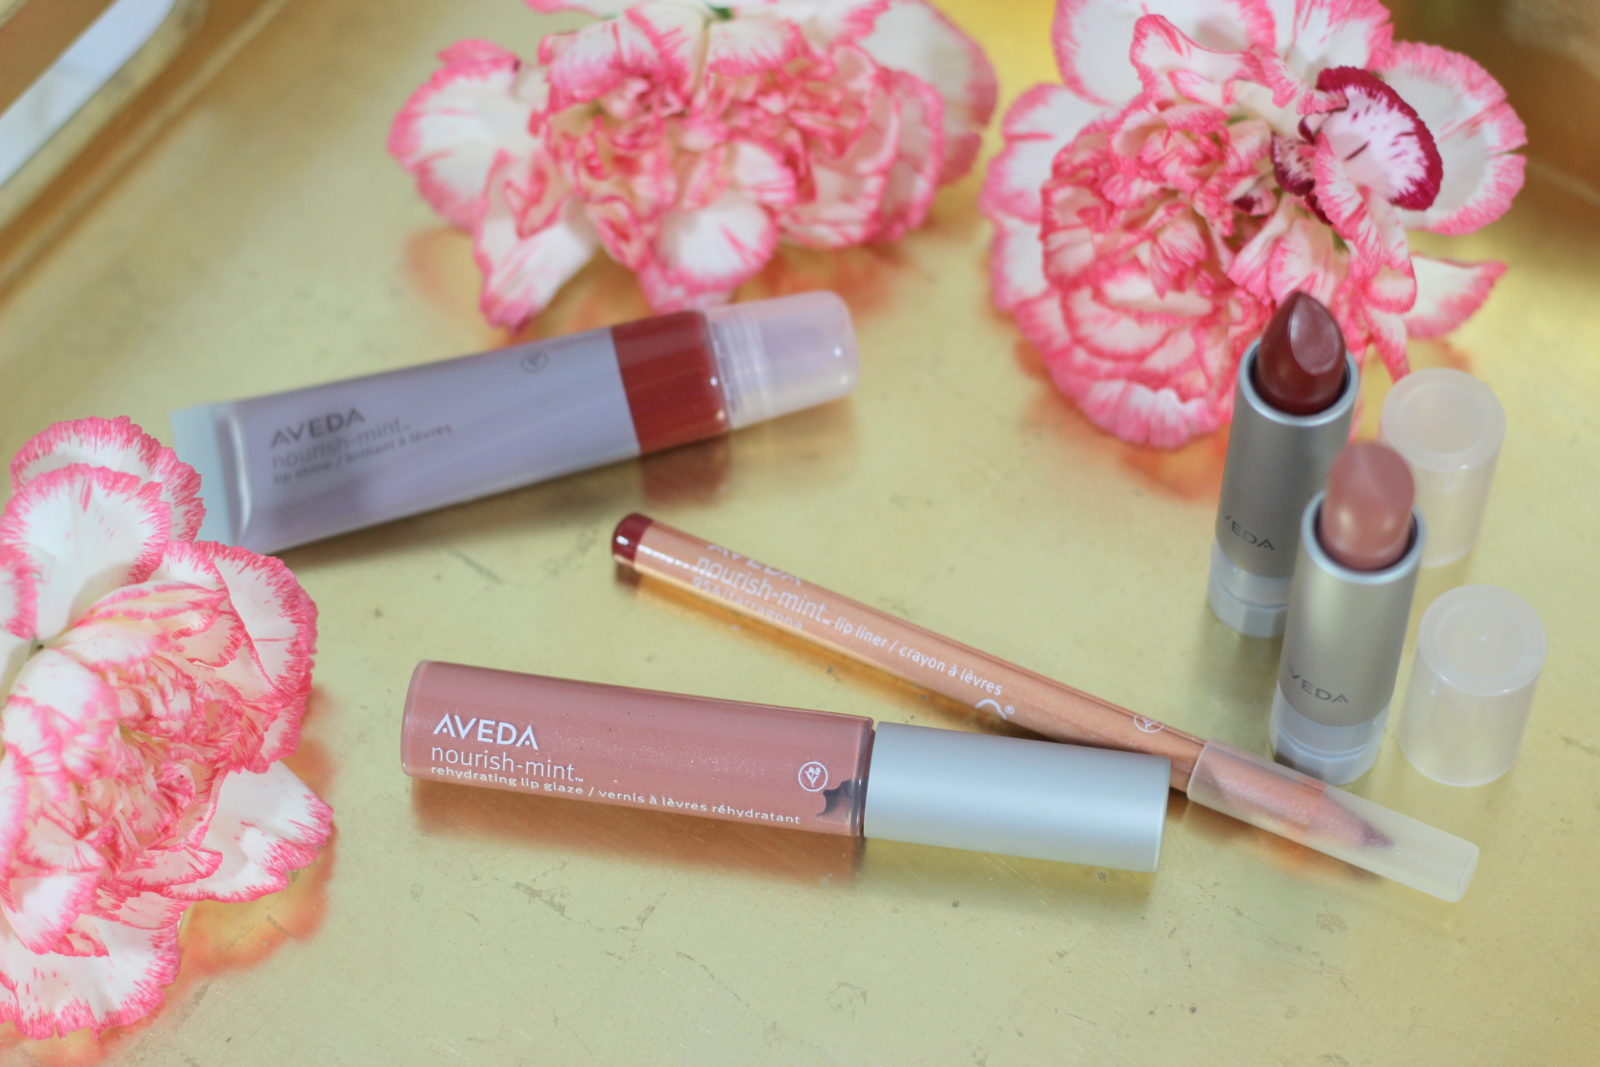 Aveda FOKLOR – Autumn/Winter Makeup Collection